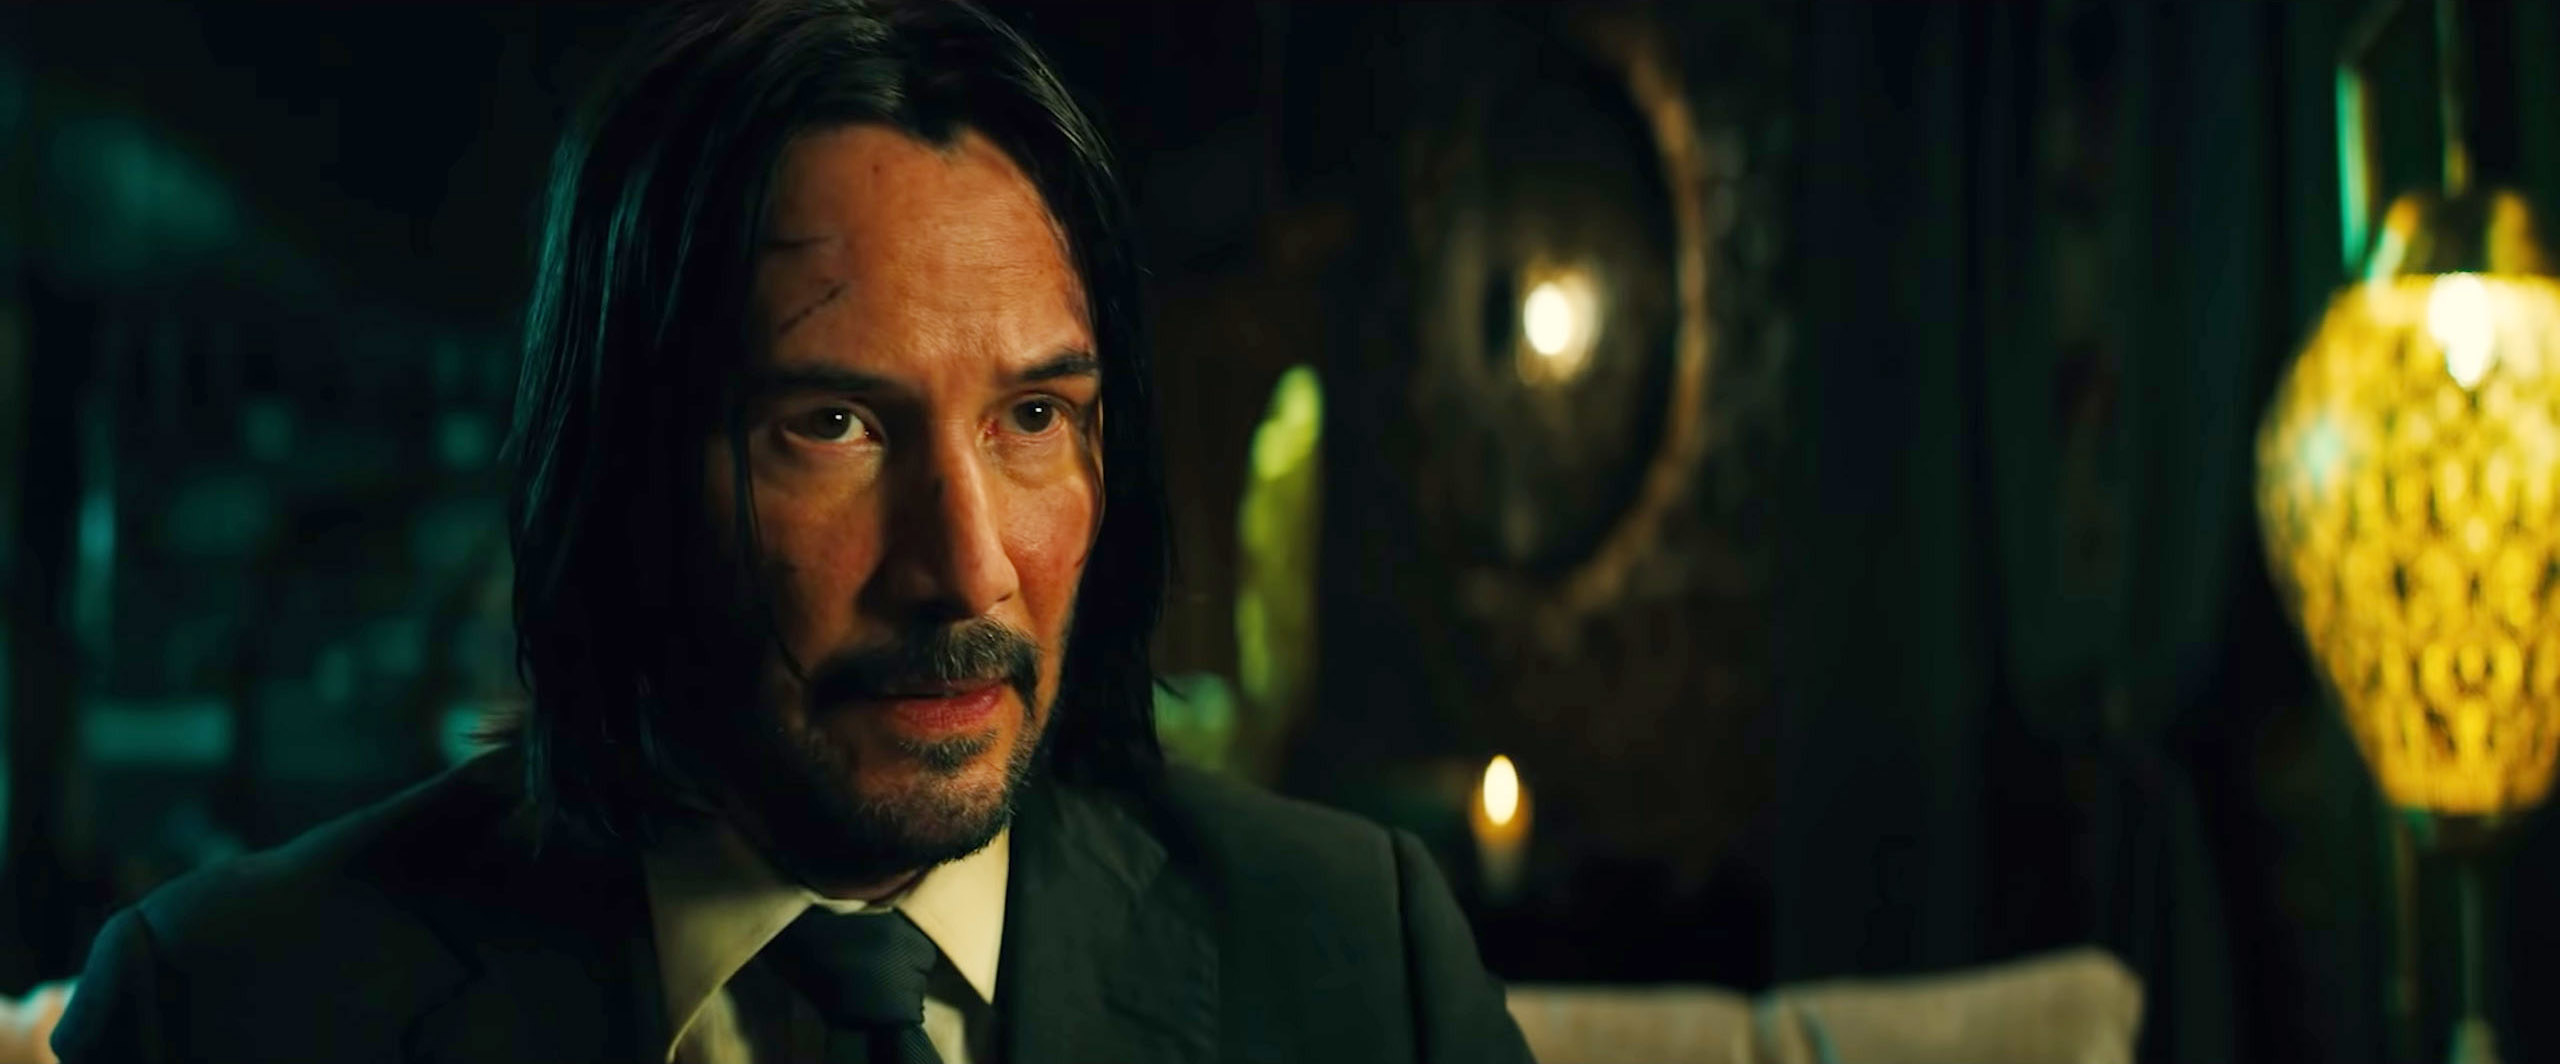 Keanu Reeves as John Wick with a bloodied face